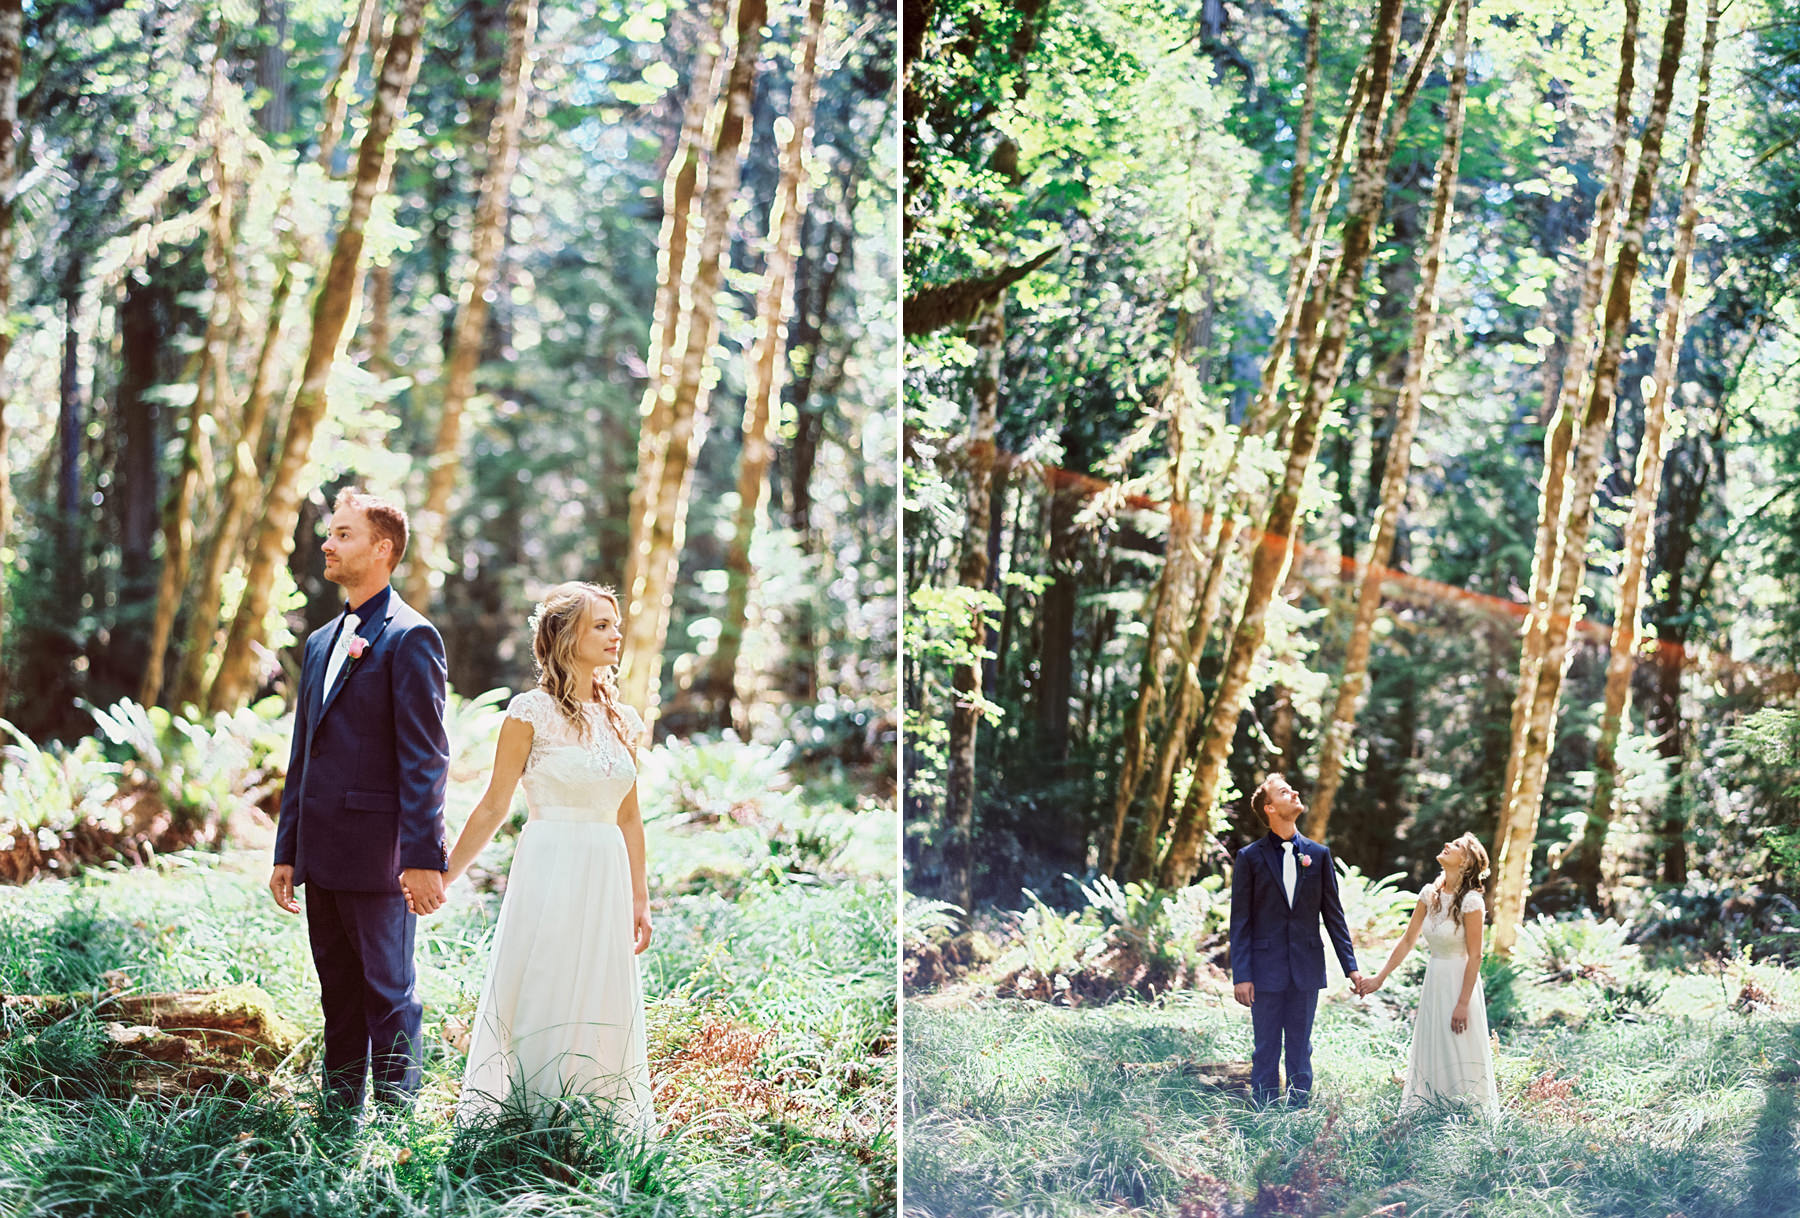 163-fine-art-film-wedding-portraits-at-nature-bride-near-the-lake-crescent-lodge.jpg